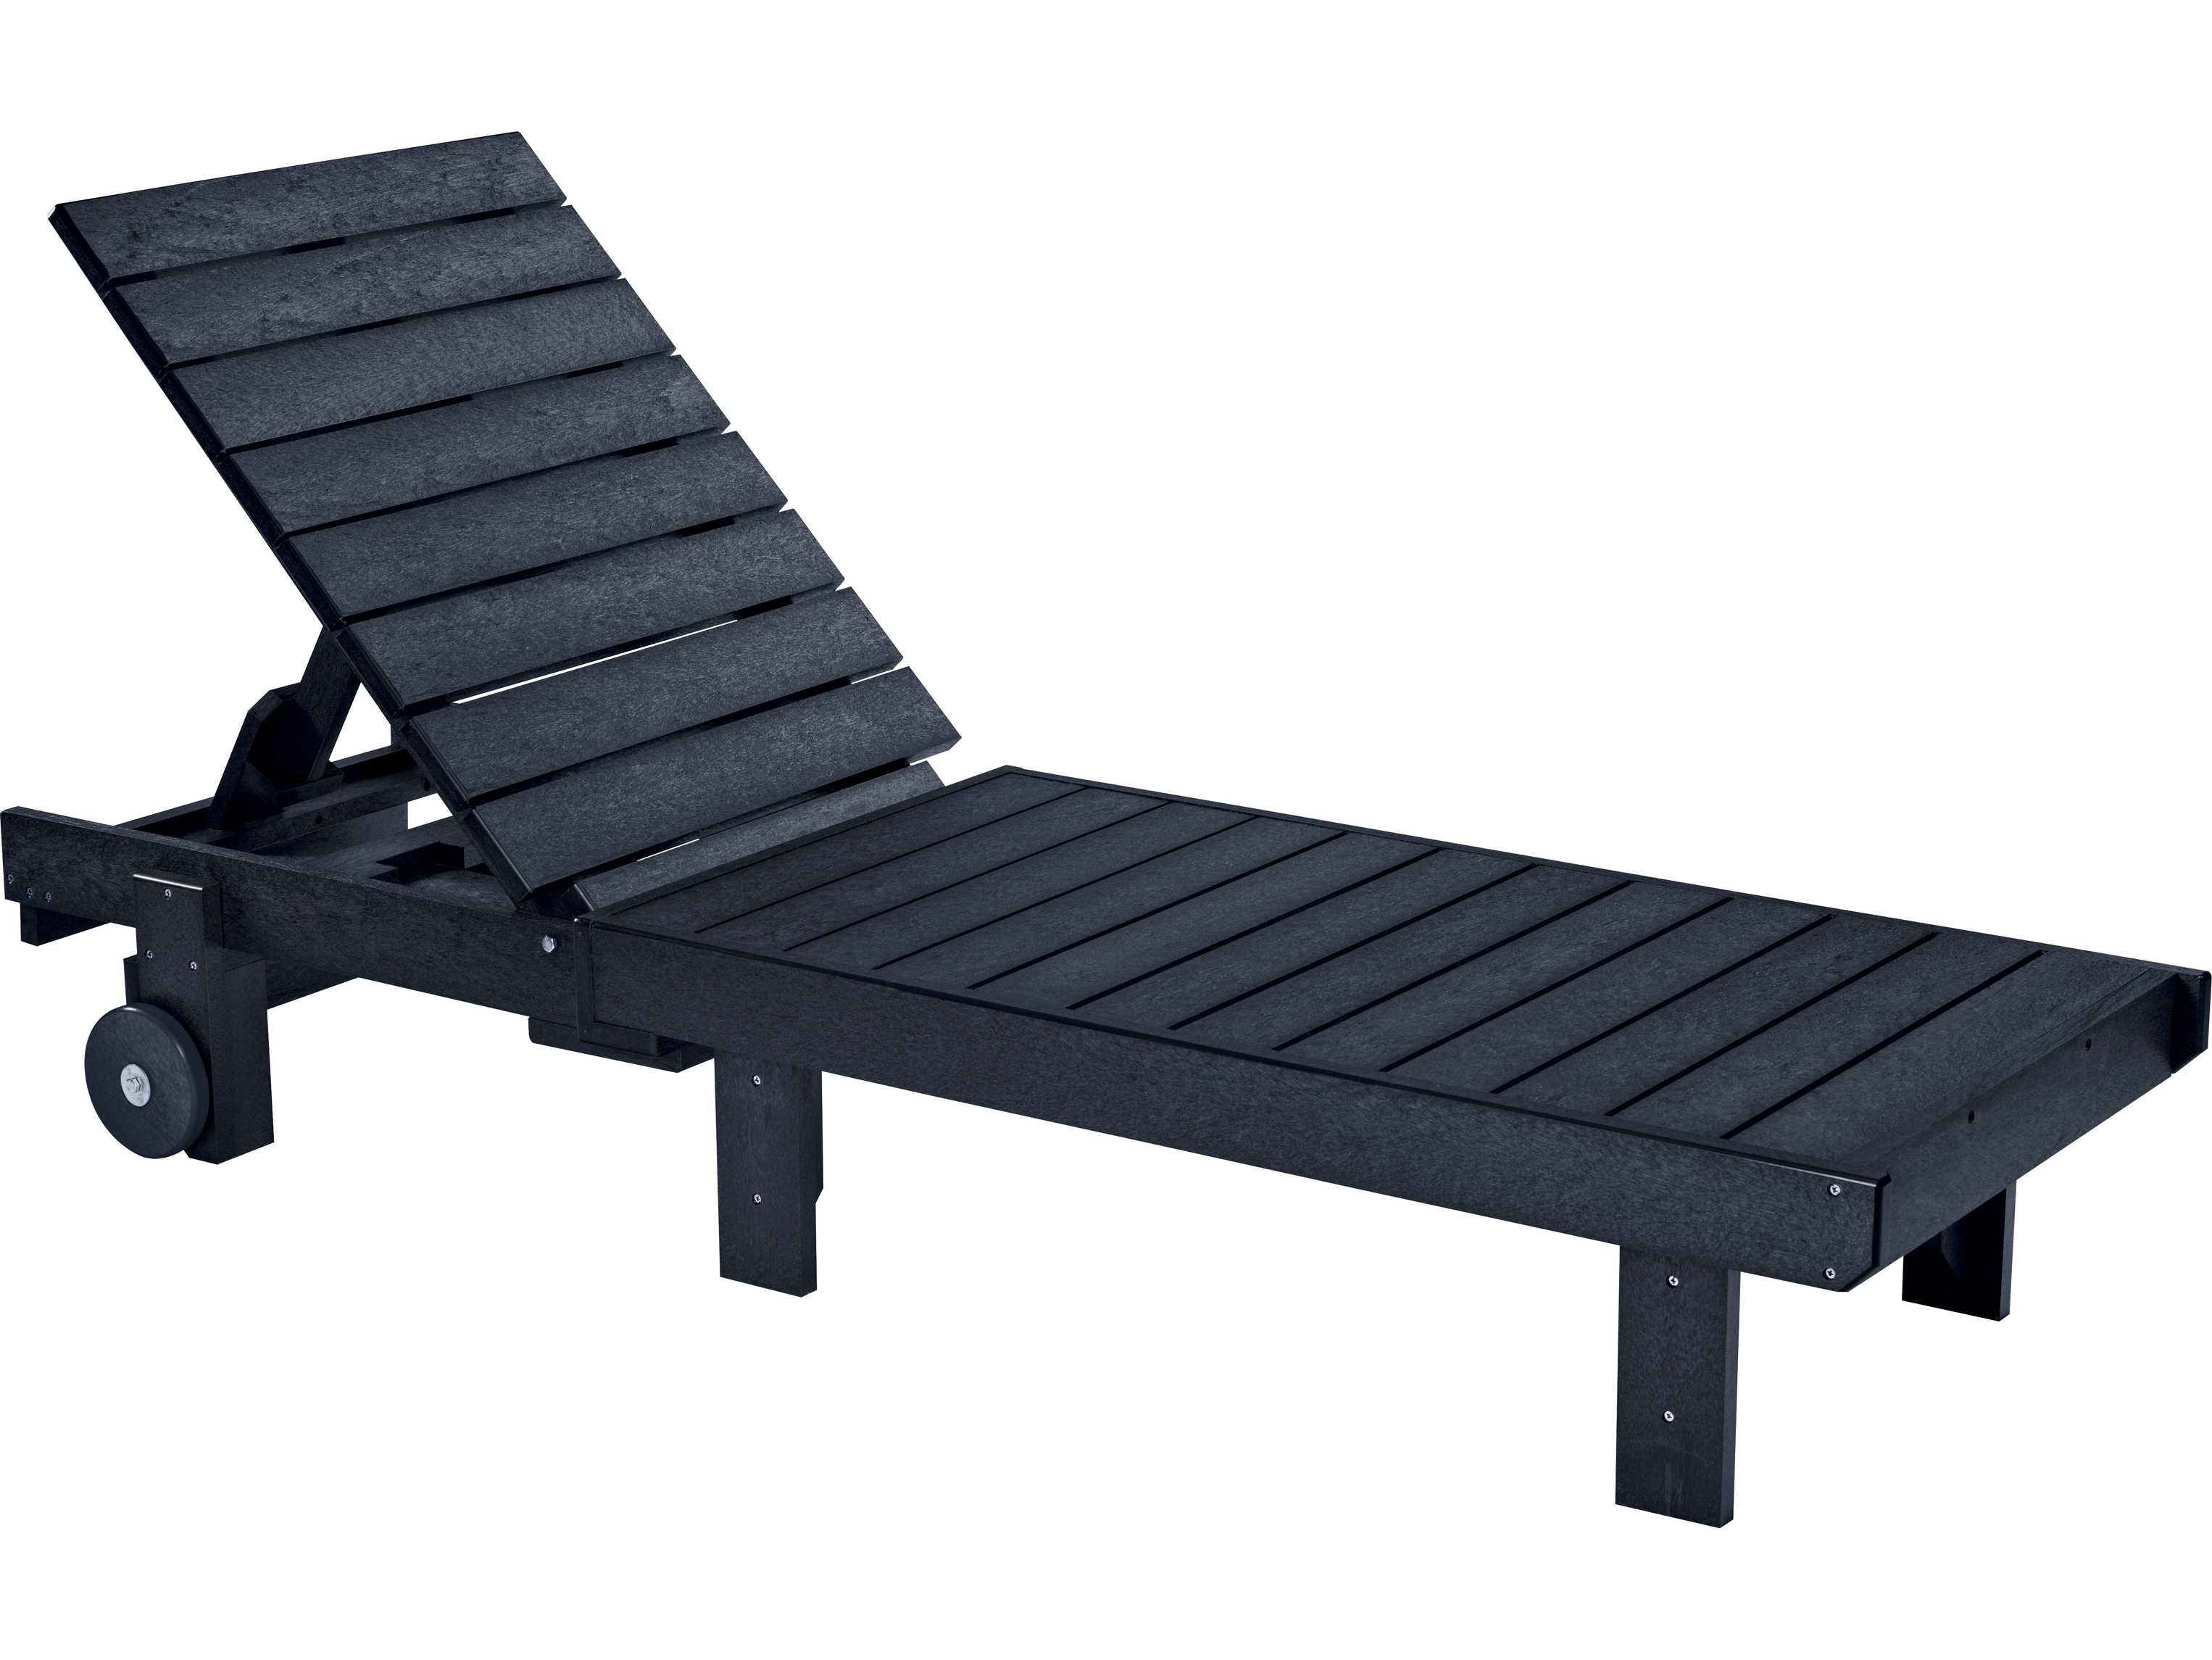 C r plastic generation chaise lounge l78 for Chaise longue jardin pvc